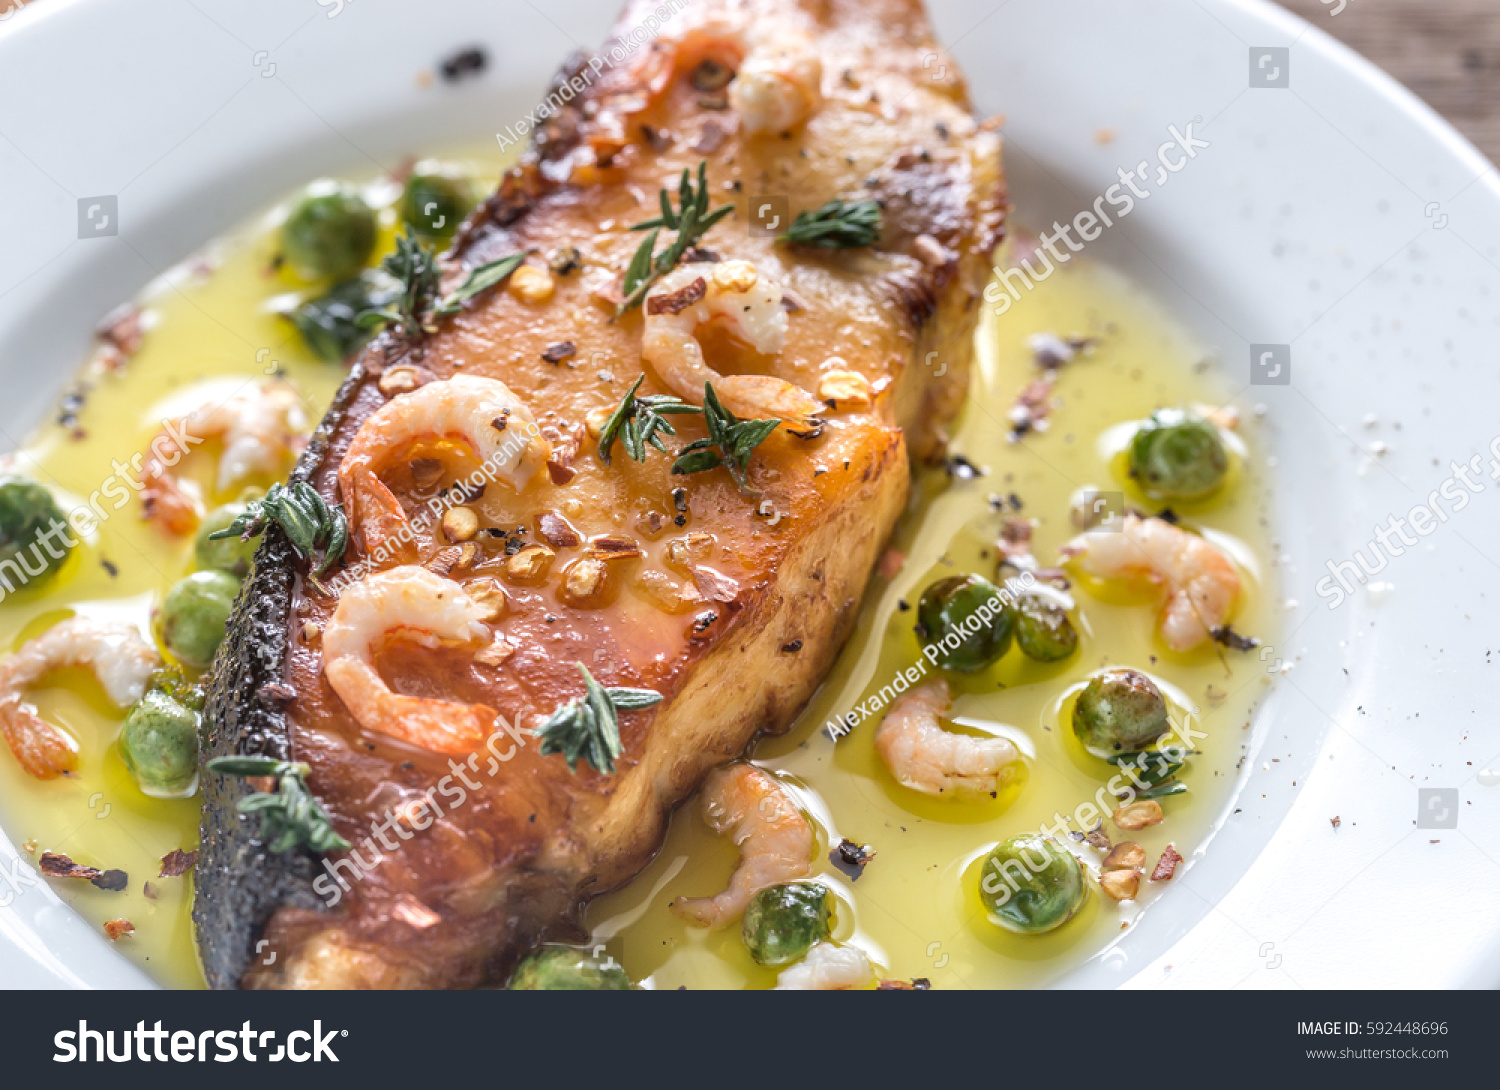 Fried fish shrimp peas stock photo 592448696 shutterstock for Fried fish and shrimp